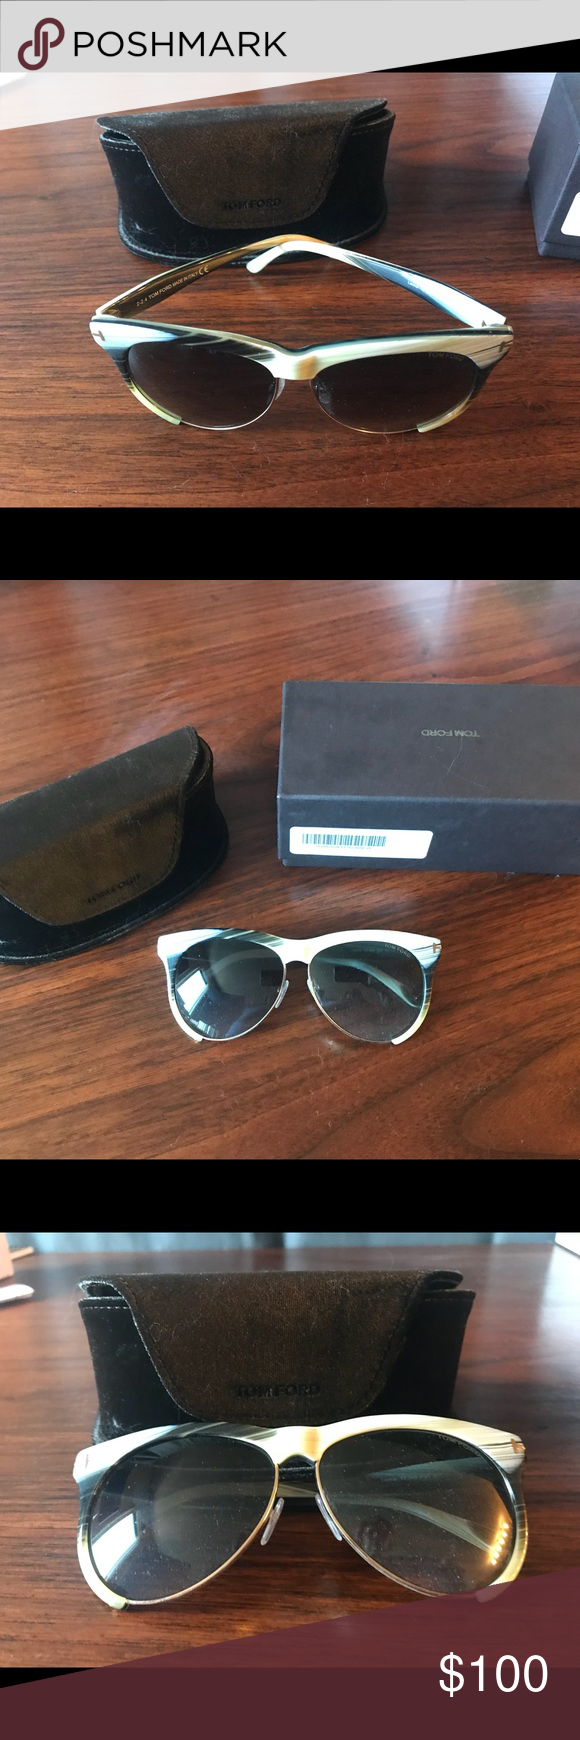 9ffaf5bfe8 Tom Ford Womens Sunglasses Horn Grey Cat Eye Sunglasses. In original  packaging never been worn. mint condition Tom Ford Accessories Sunglasses